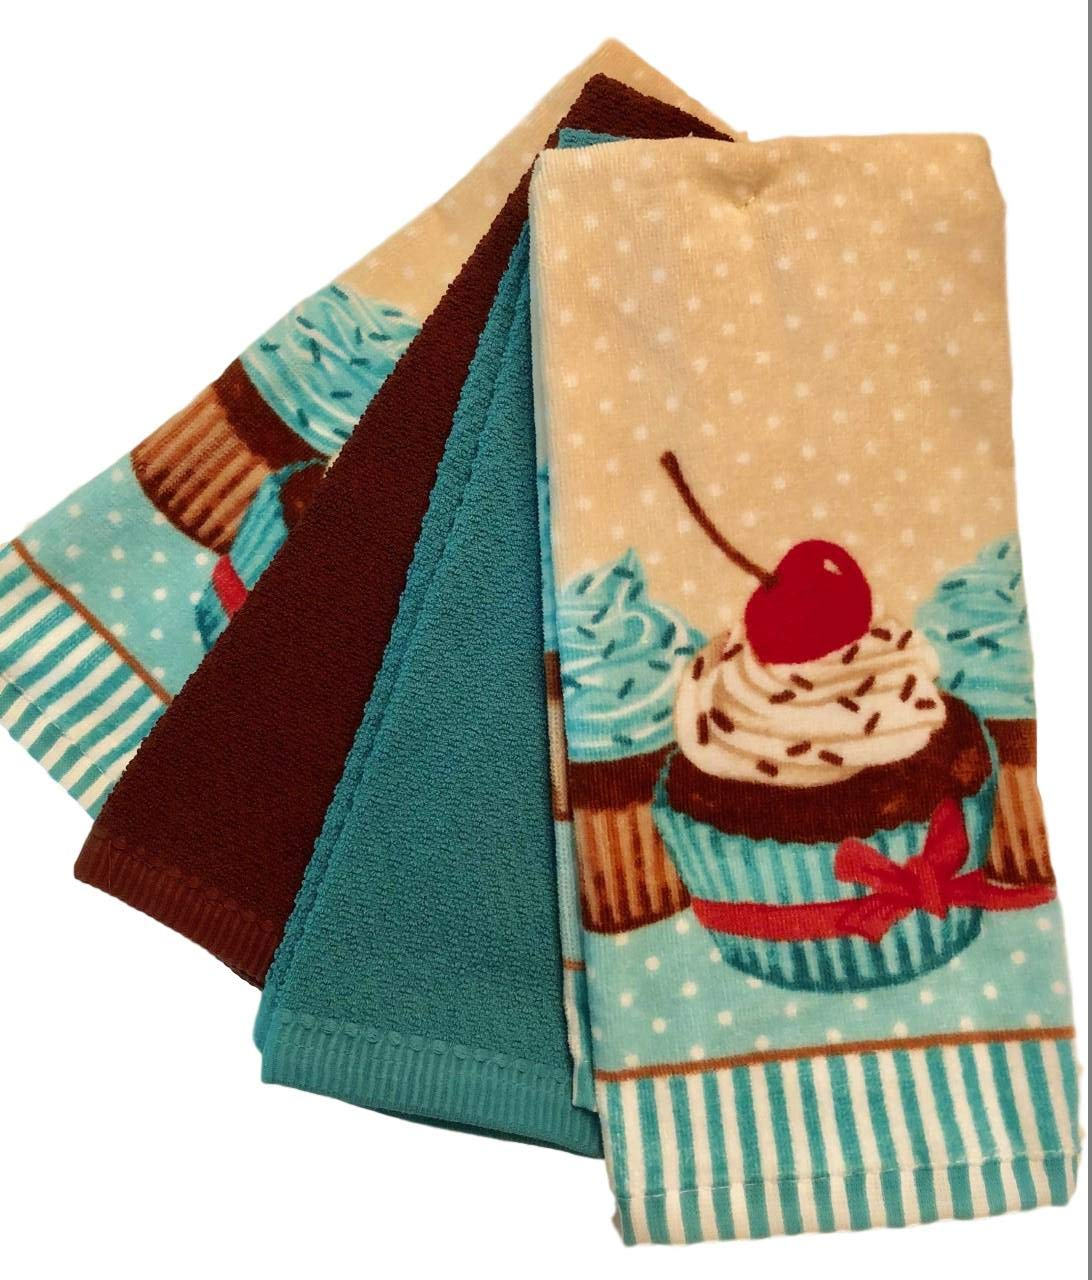 Essential Home 4-Pack Bundle Delightful Treats 100% Cotton Kitchen Dish Towel Set (Turquoise Cupcake)